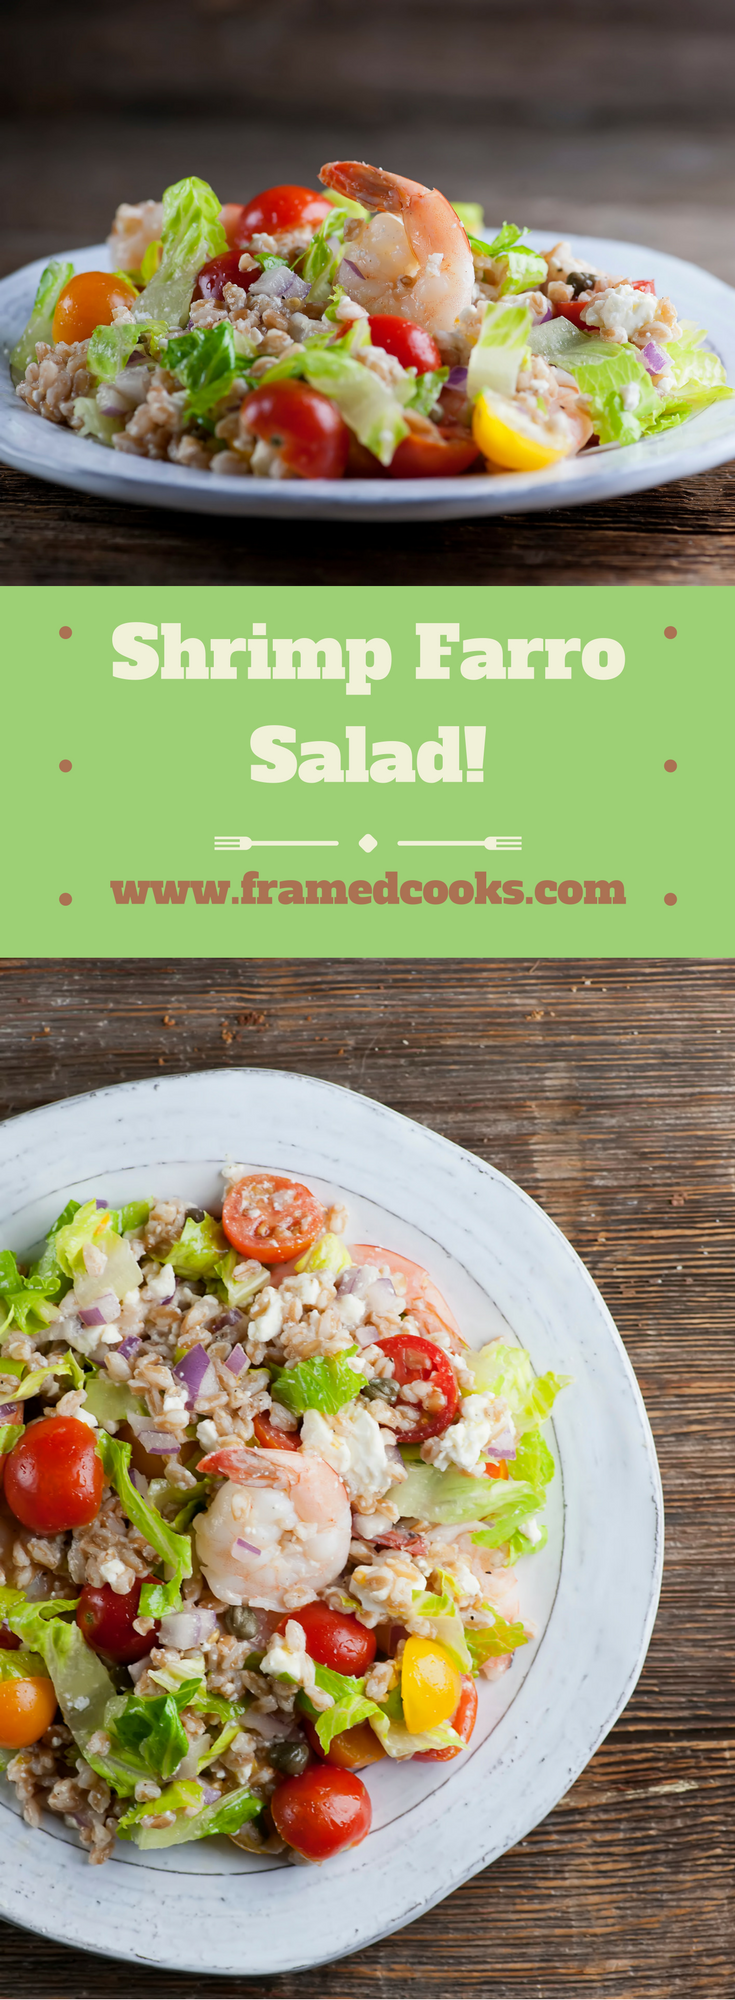 This recipe for shrimp farro salad features feta cheese, mint and tomatoes for a delectable lunch or light supper!